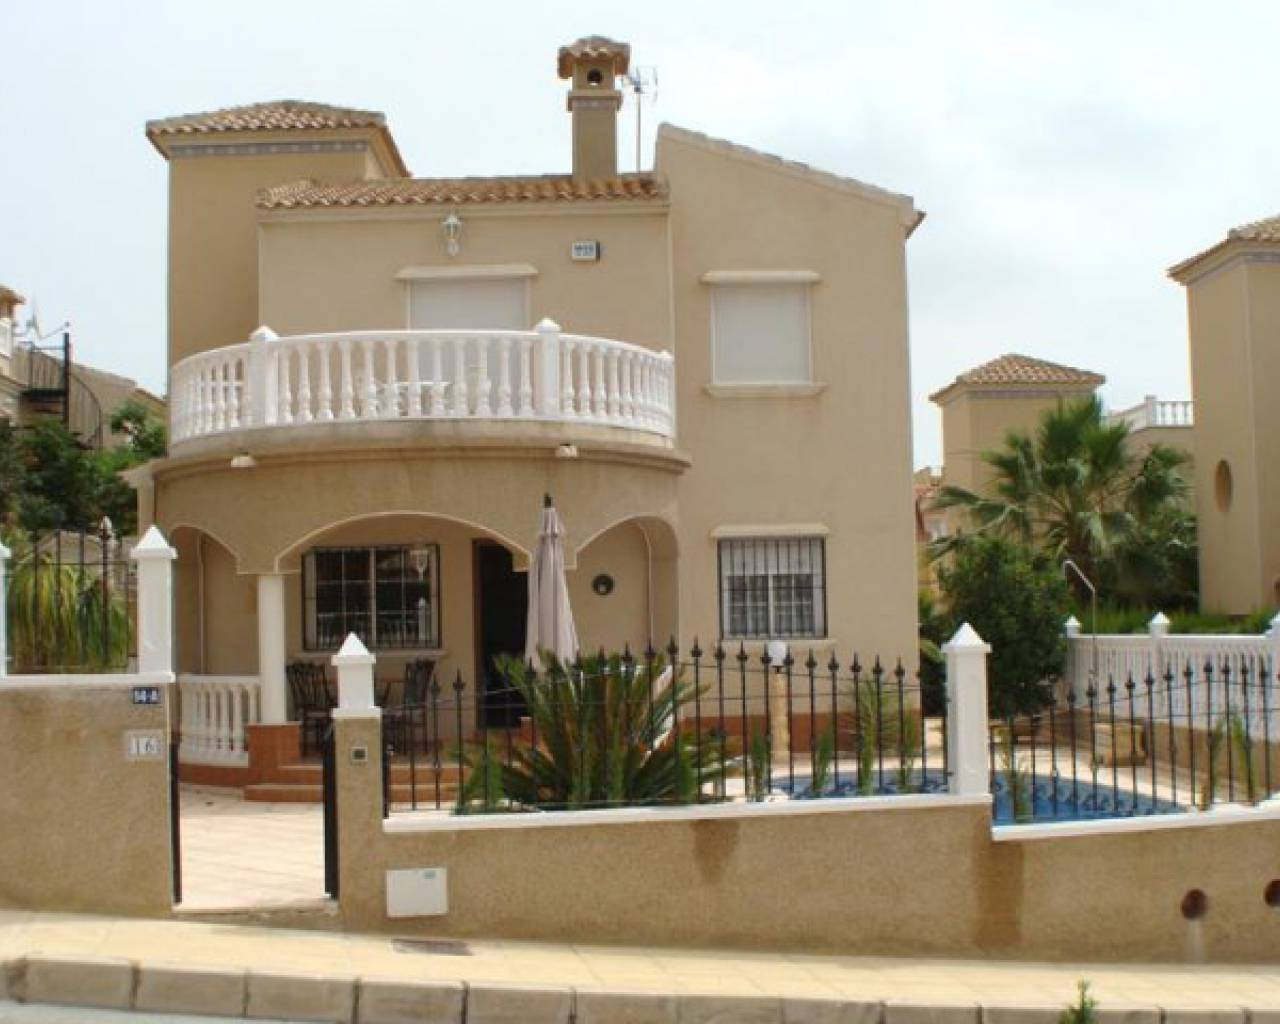 Villa - Long term rental - Orihuela Costa - El Galán